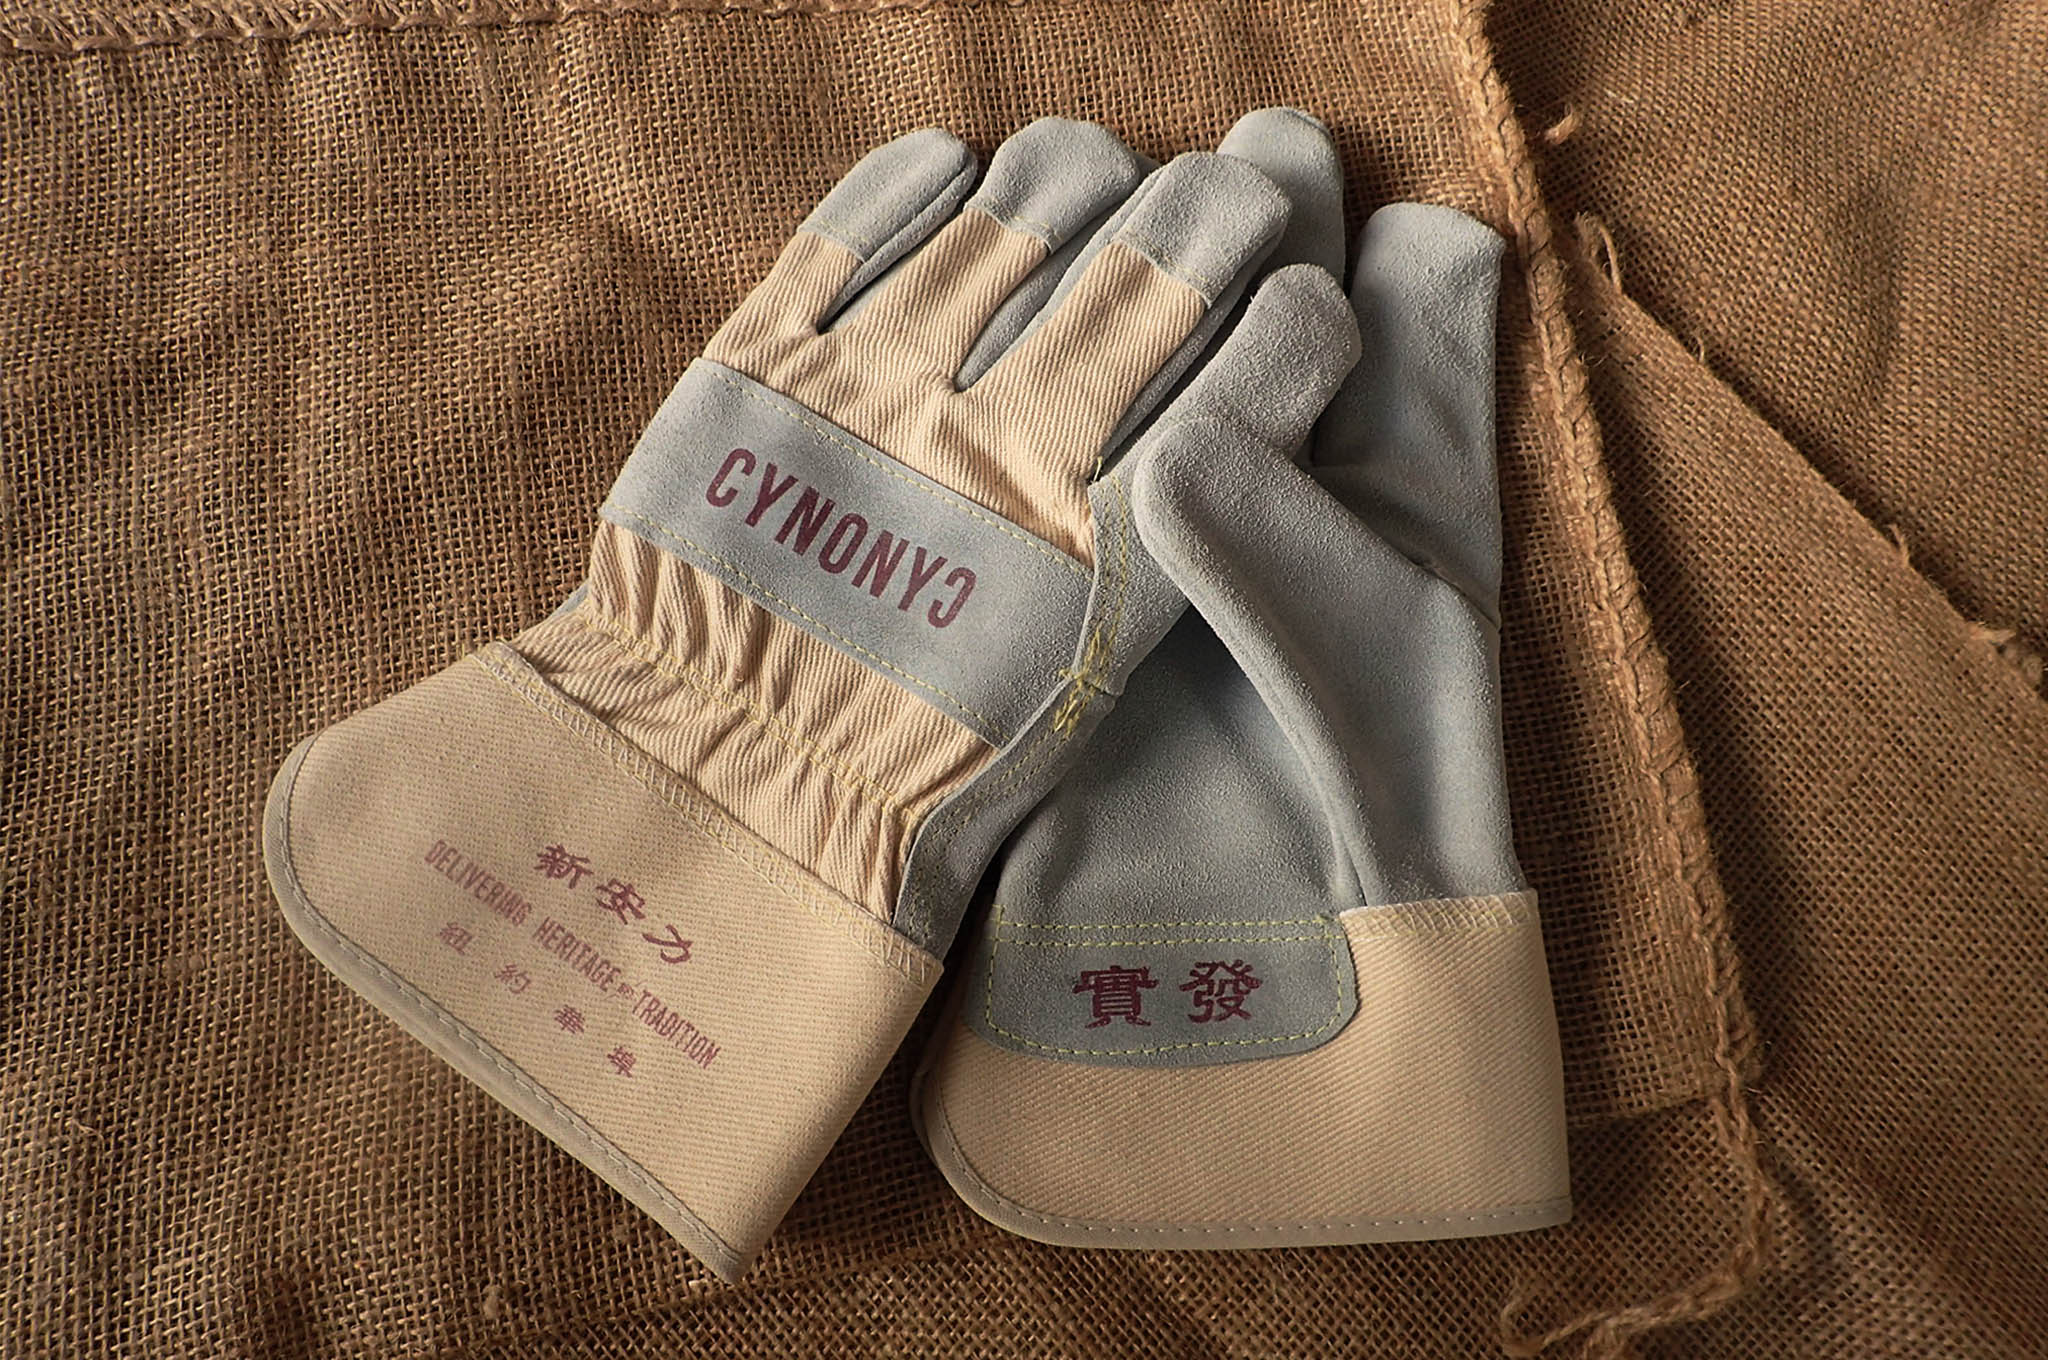 CHINESE NEW YEAR 2018 CYNONYC WORK GLOVE